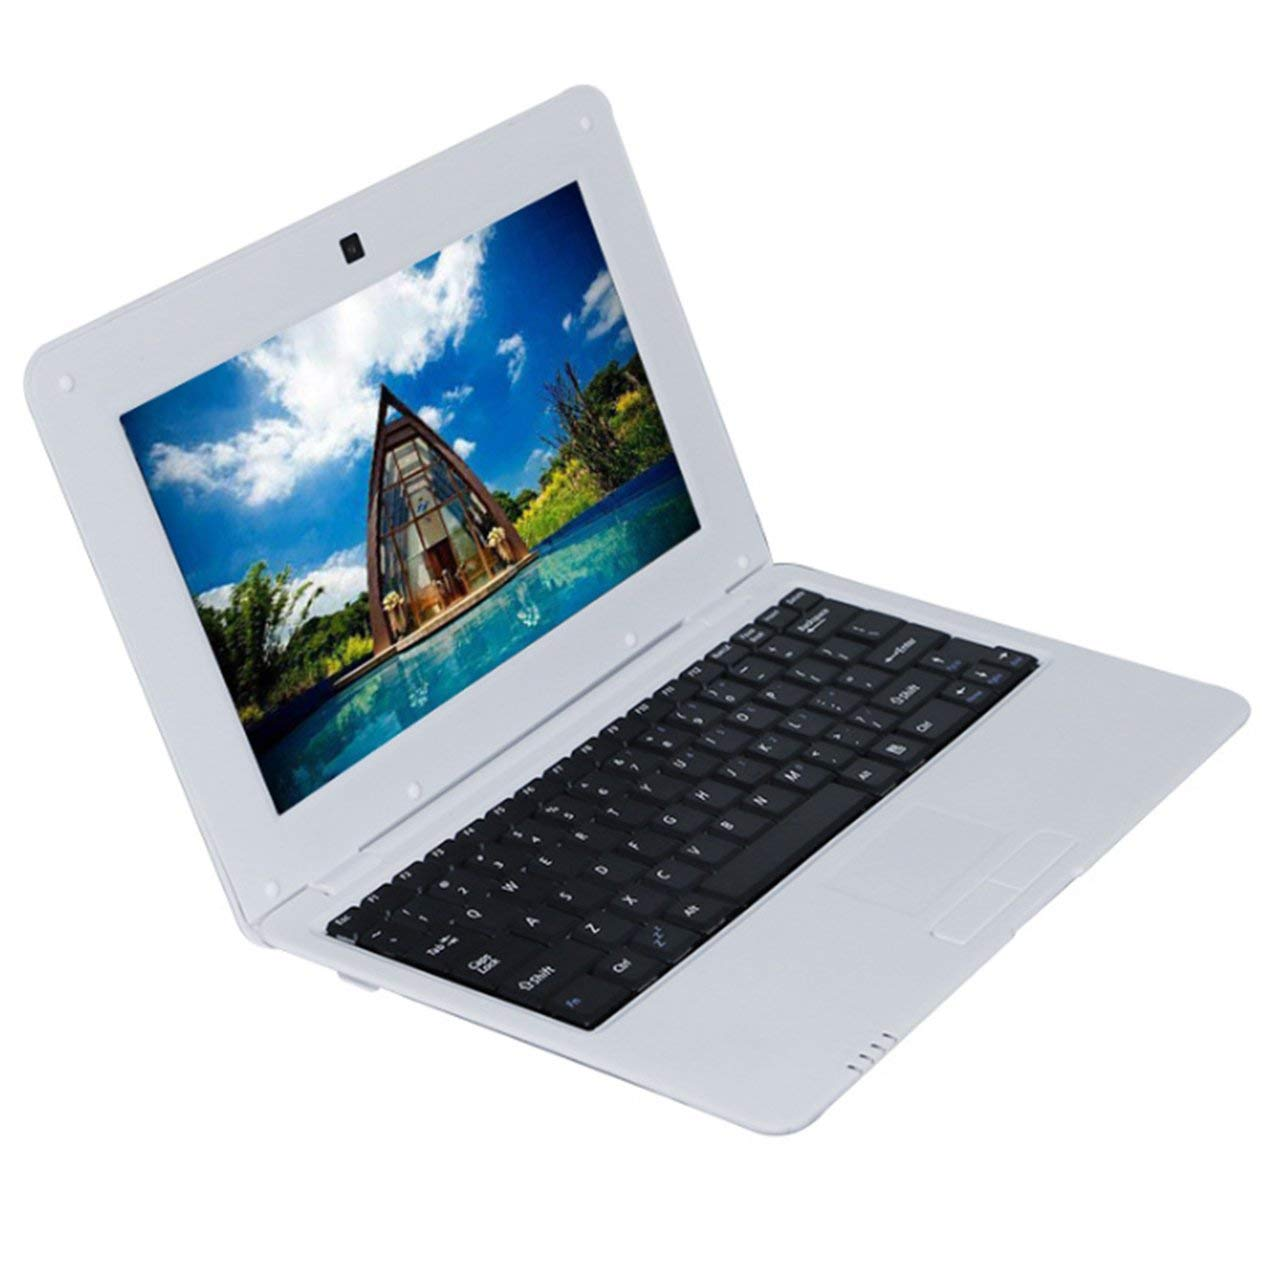 10.1 inch for Android 4.4 WM8880 Dual Core 1.5GHz 512M + 4G WiFi Mini Netbook Game Notebook Laptop PC Computer by NeanTak-us